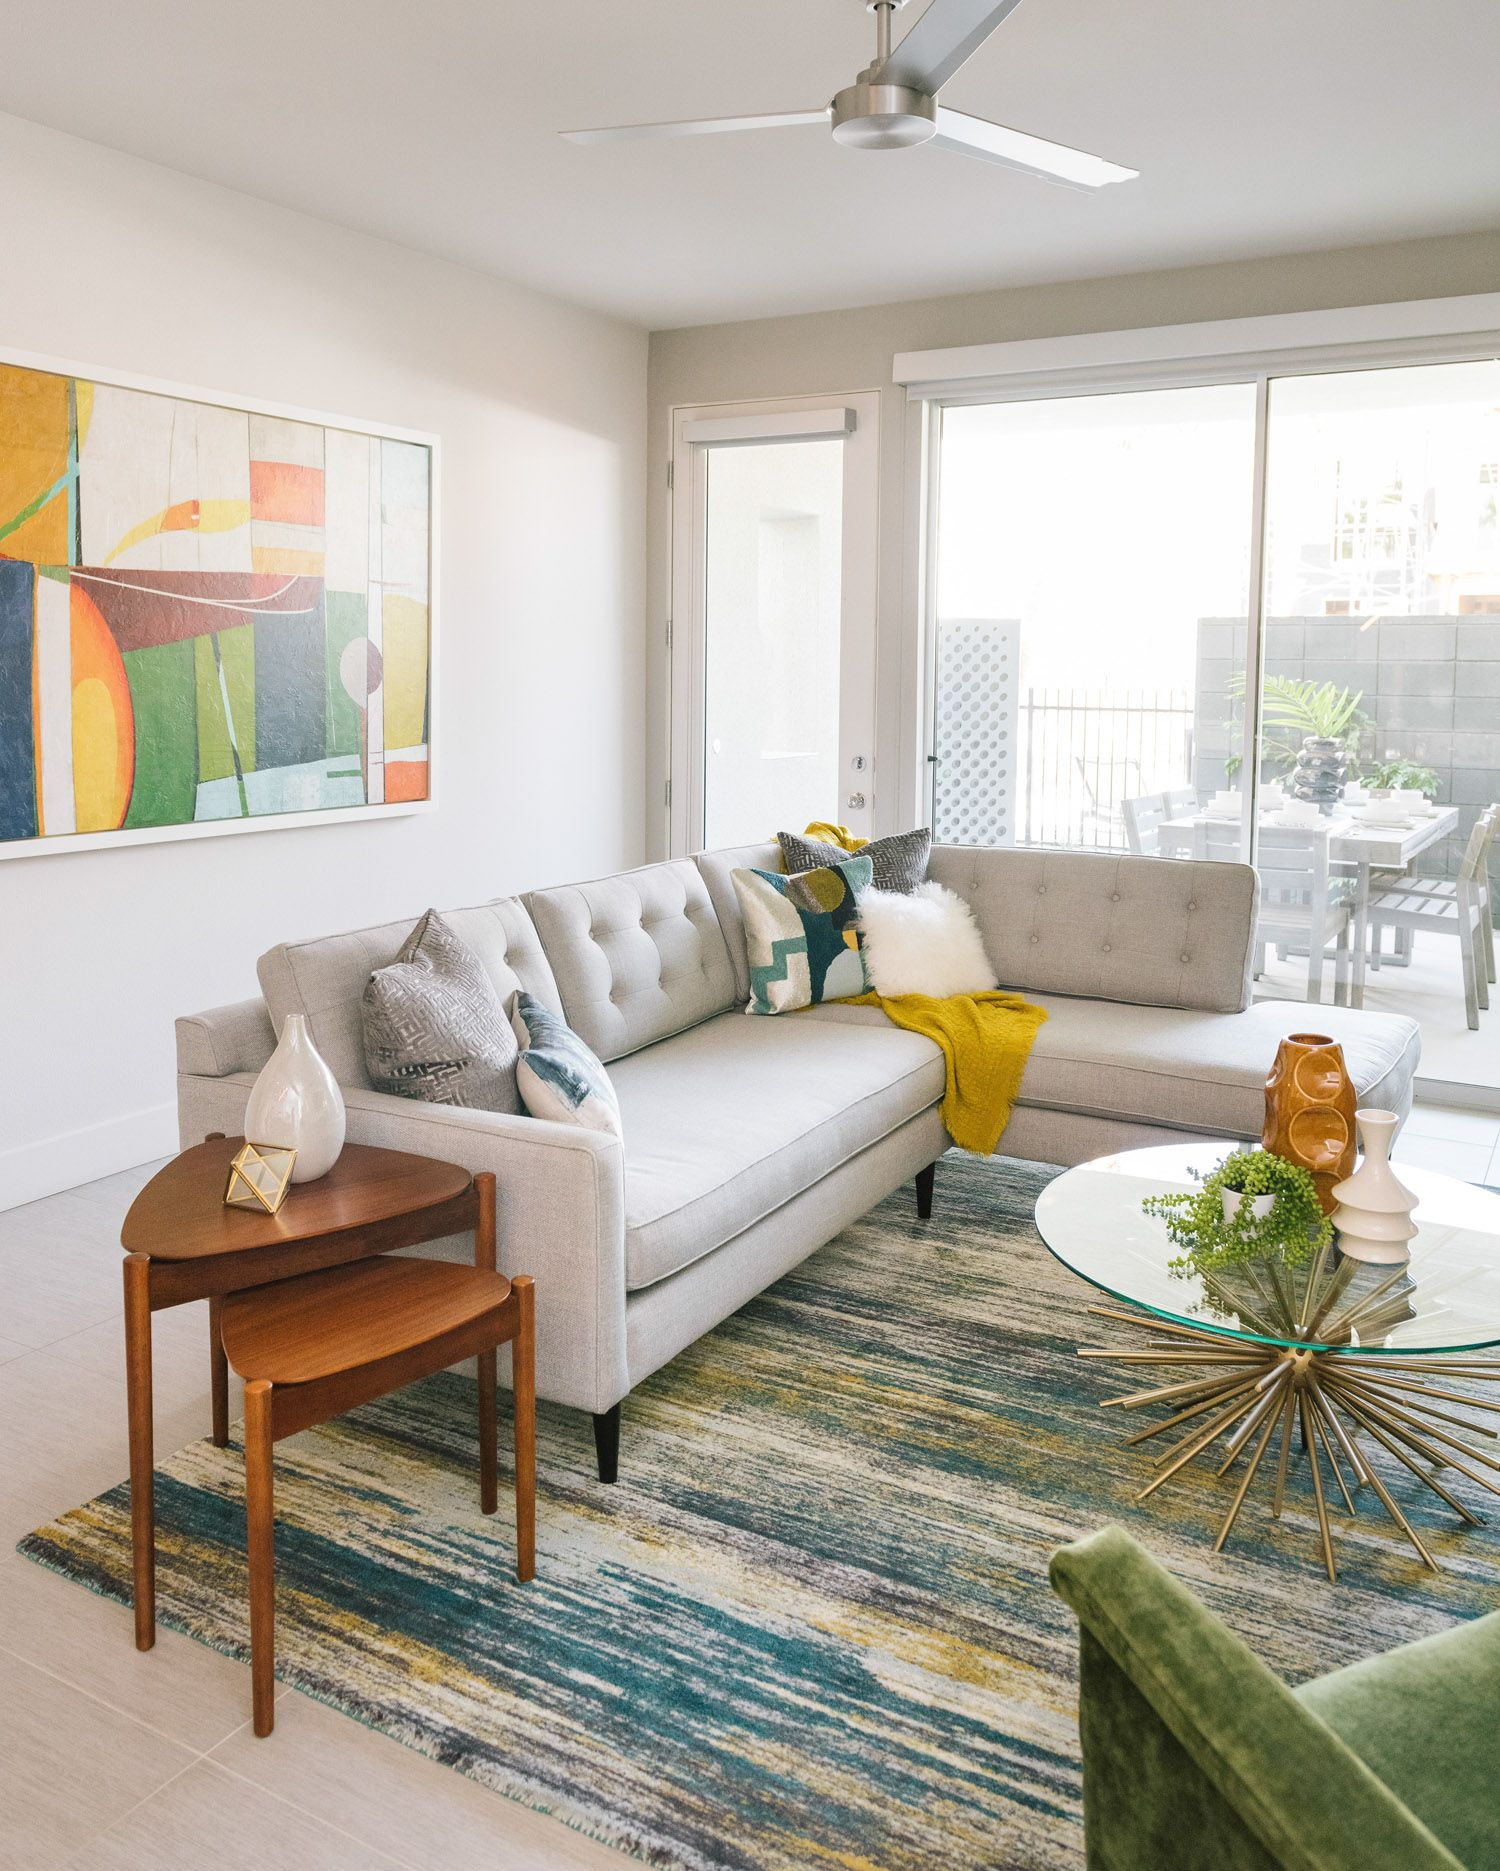 West Elm S Colorful Verve Rug And Starburst Coffee Table Give This